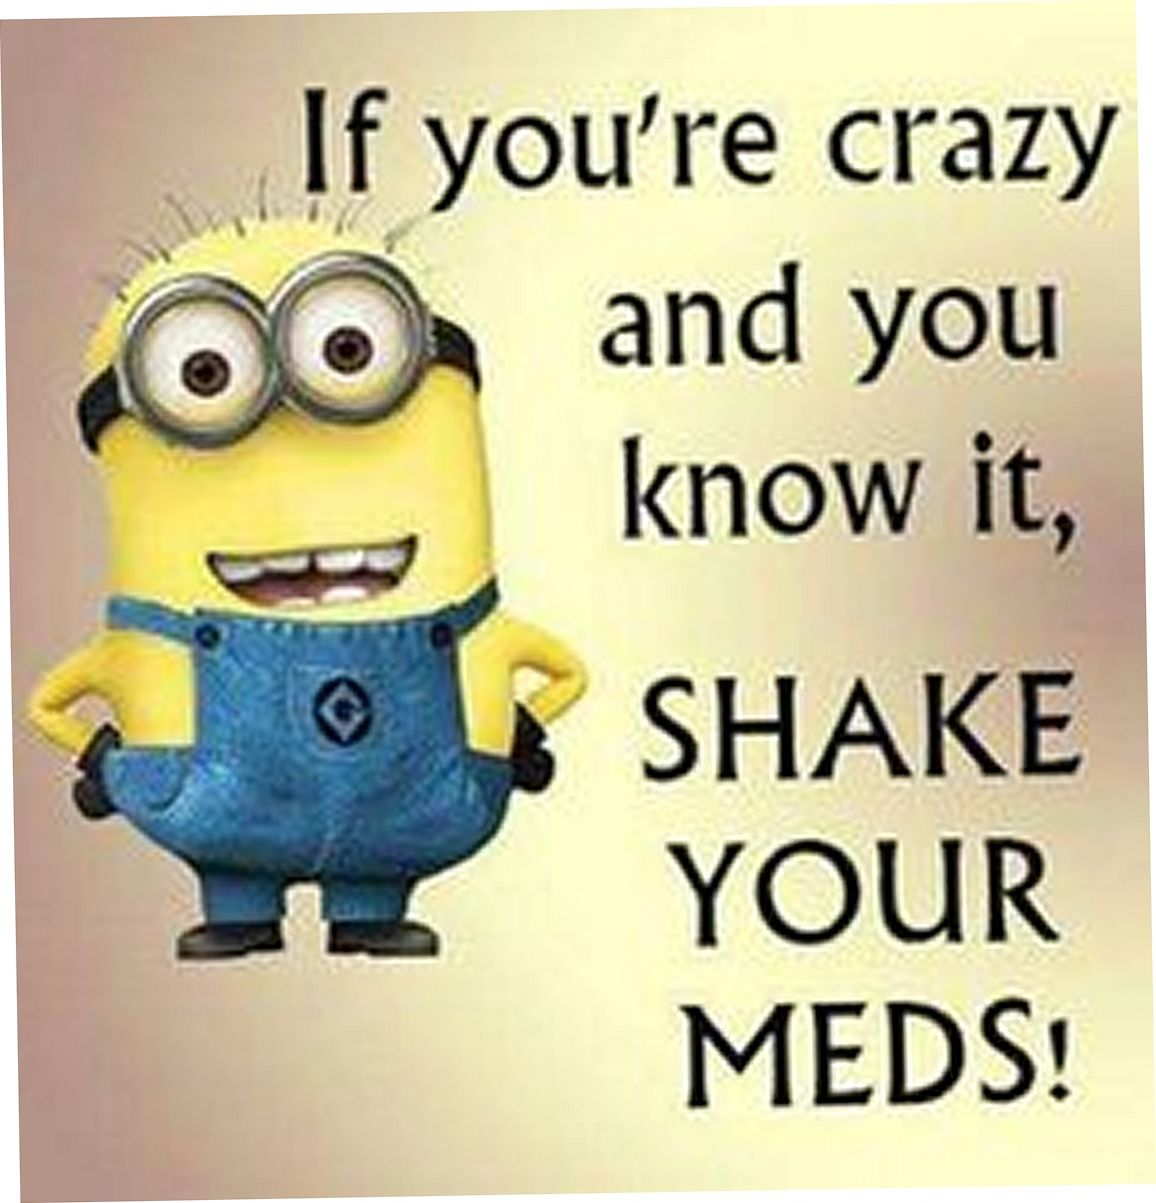 Top 30 Minion Quotes Is One Makes Me Want To Sing The Words If You Re Crazy And You Know